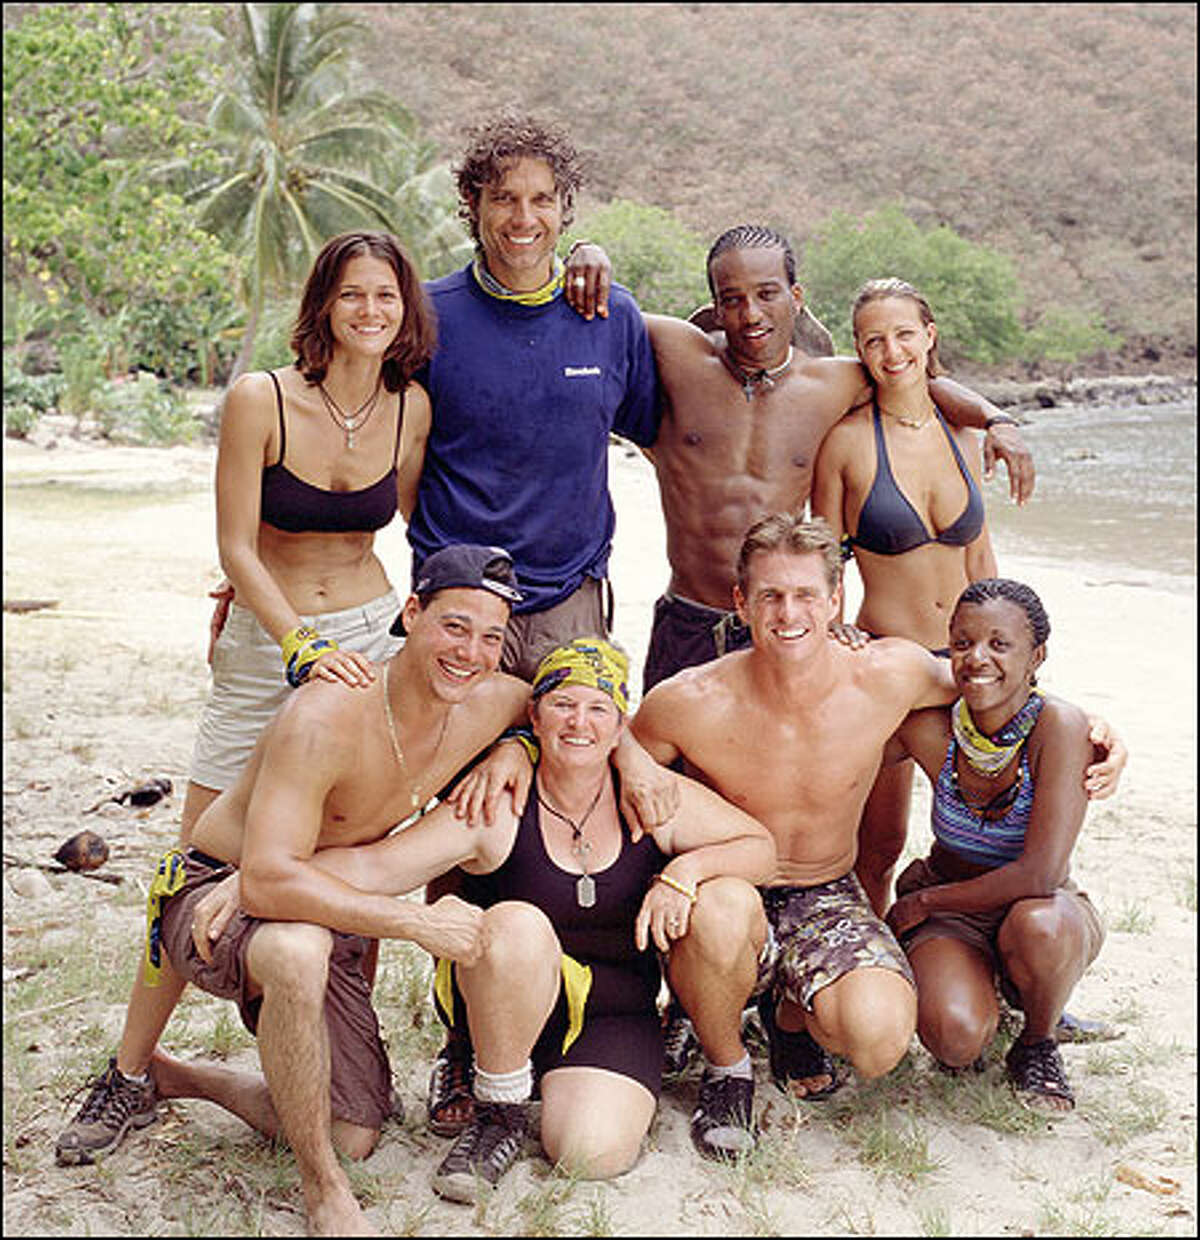 The Maraamu tribe. Front row, from left: Rob Mariano, Patricia Jackson, Hunter Ellis and Vecepia Towery. Standing, from left: Gina Crews, Peter Harkey, Sean Rector and Sarah Jones.